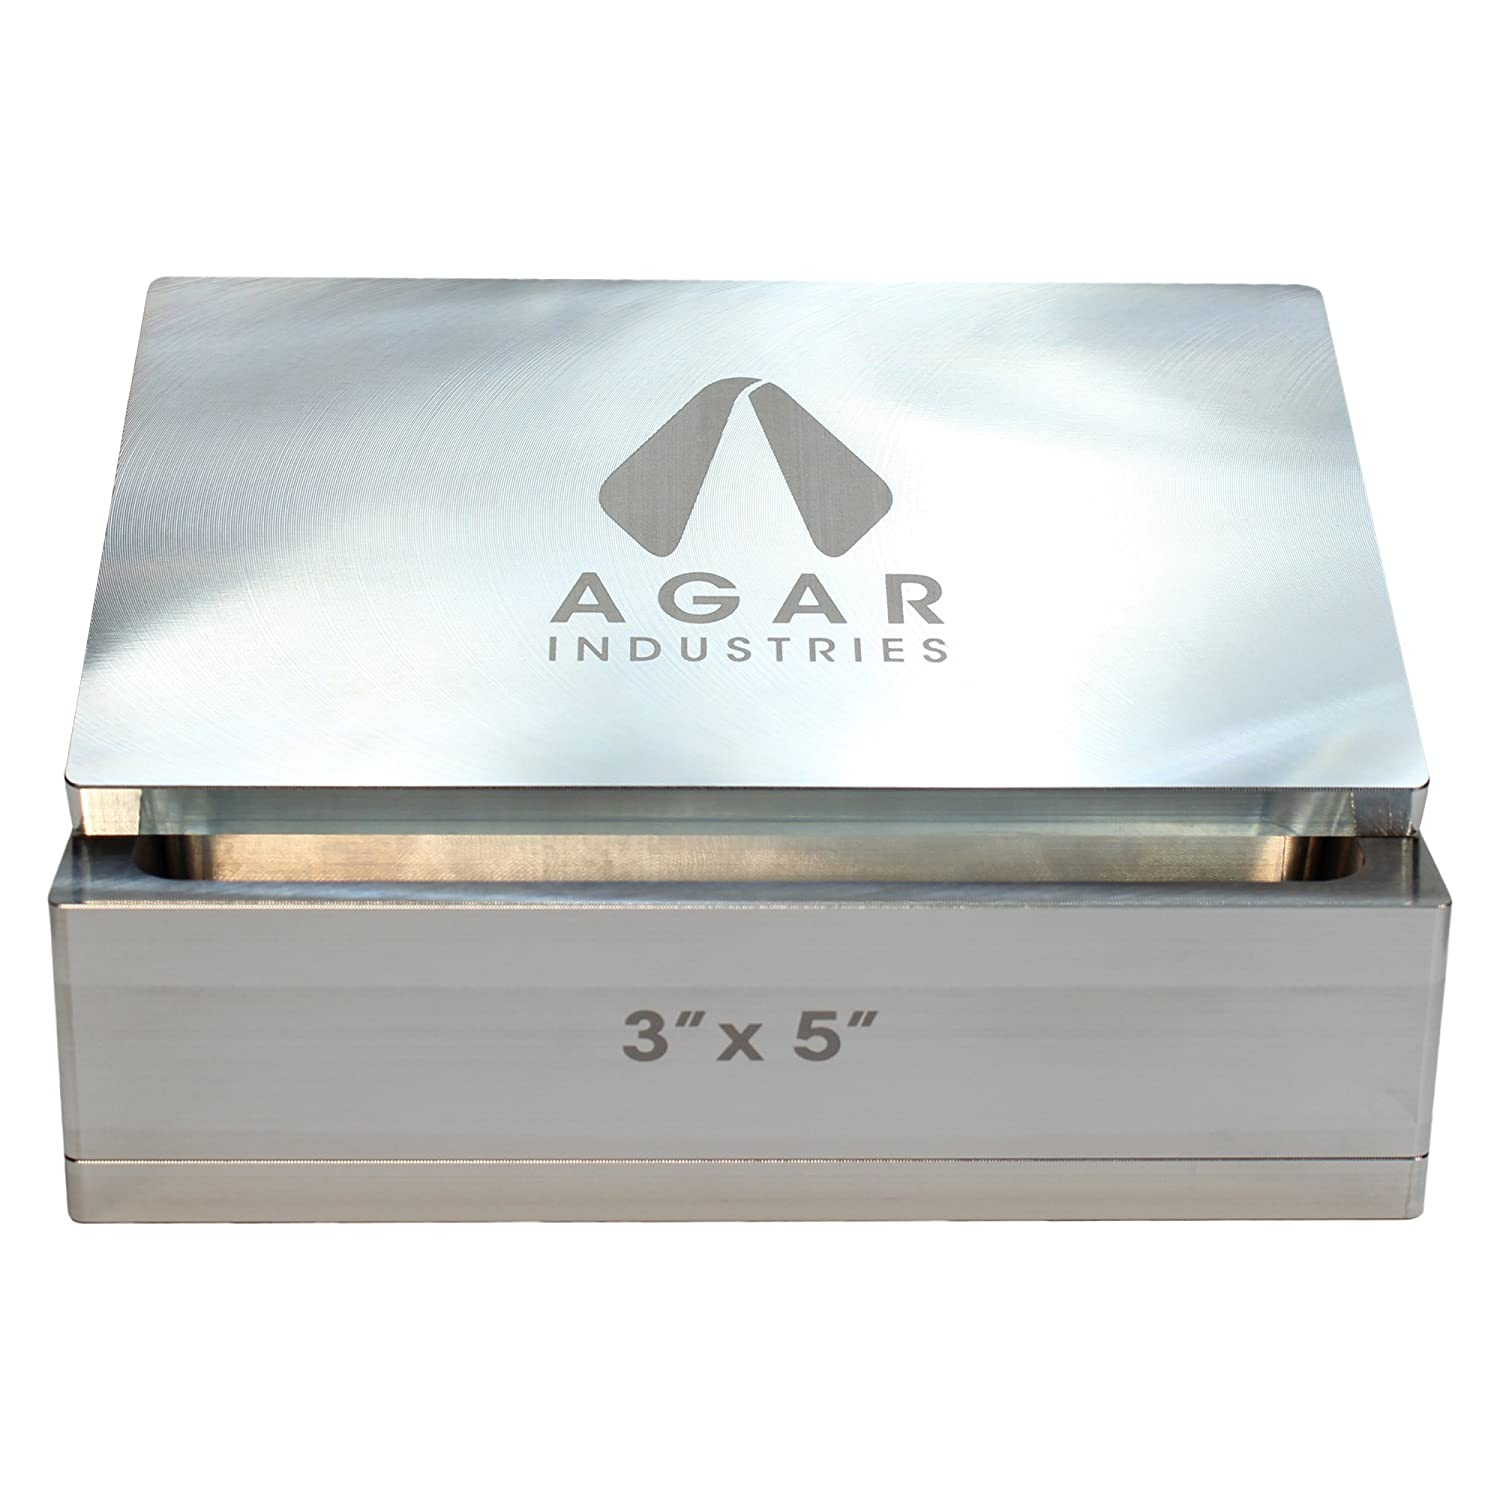 Agar Industries Rosin Pre Press Mold for DIY Solventless Extraction & Pressing - 2.5 x 2.5